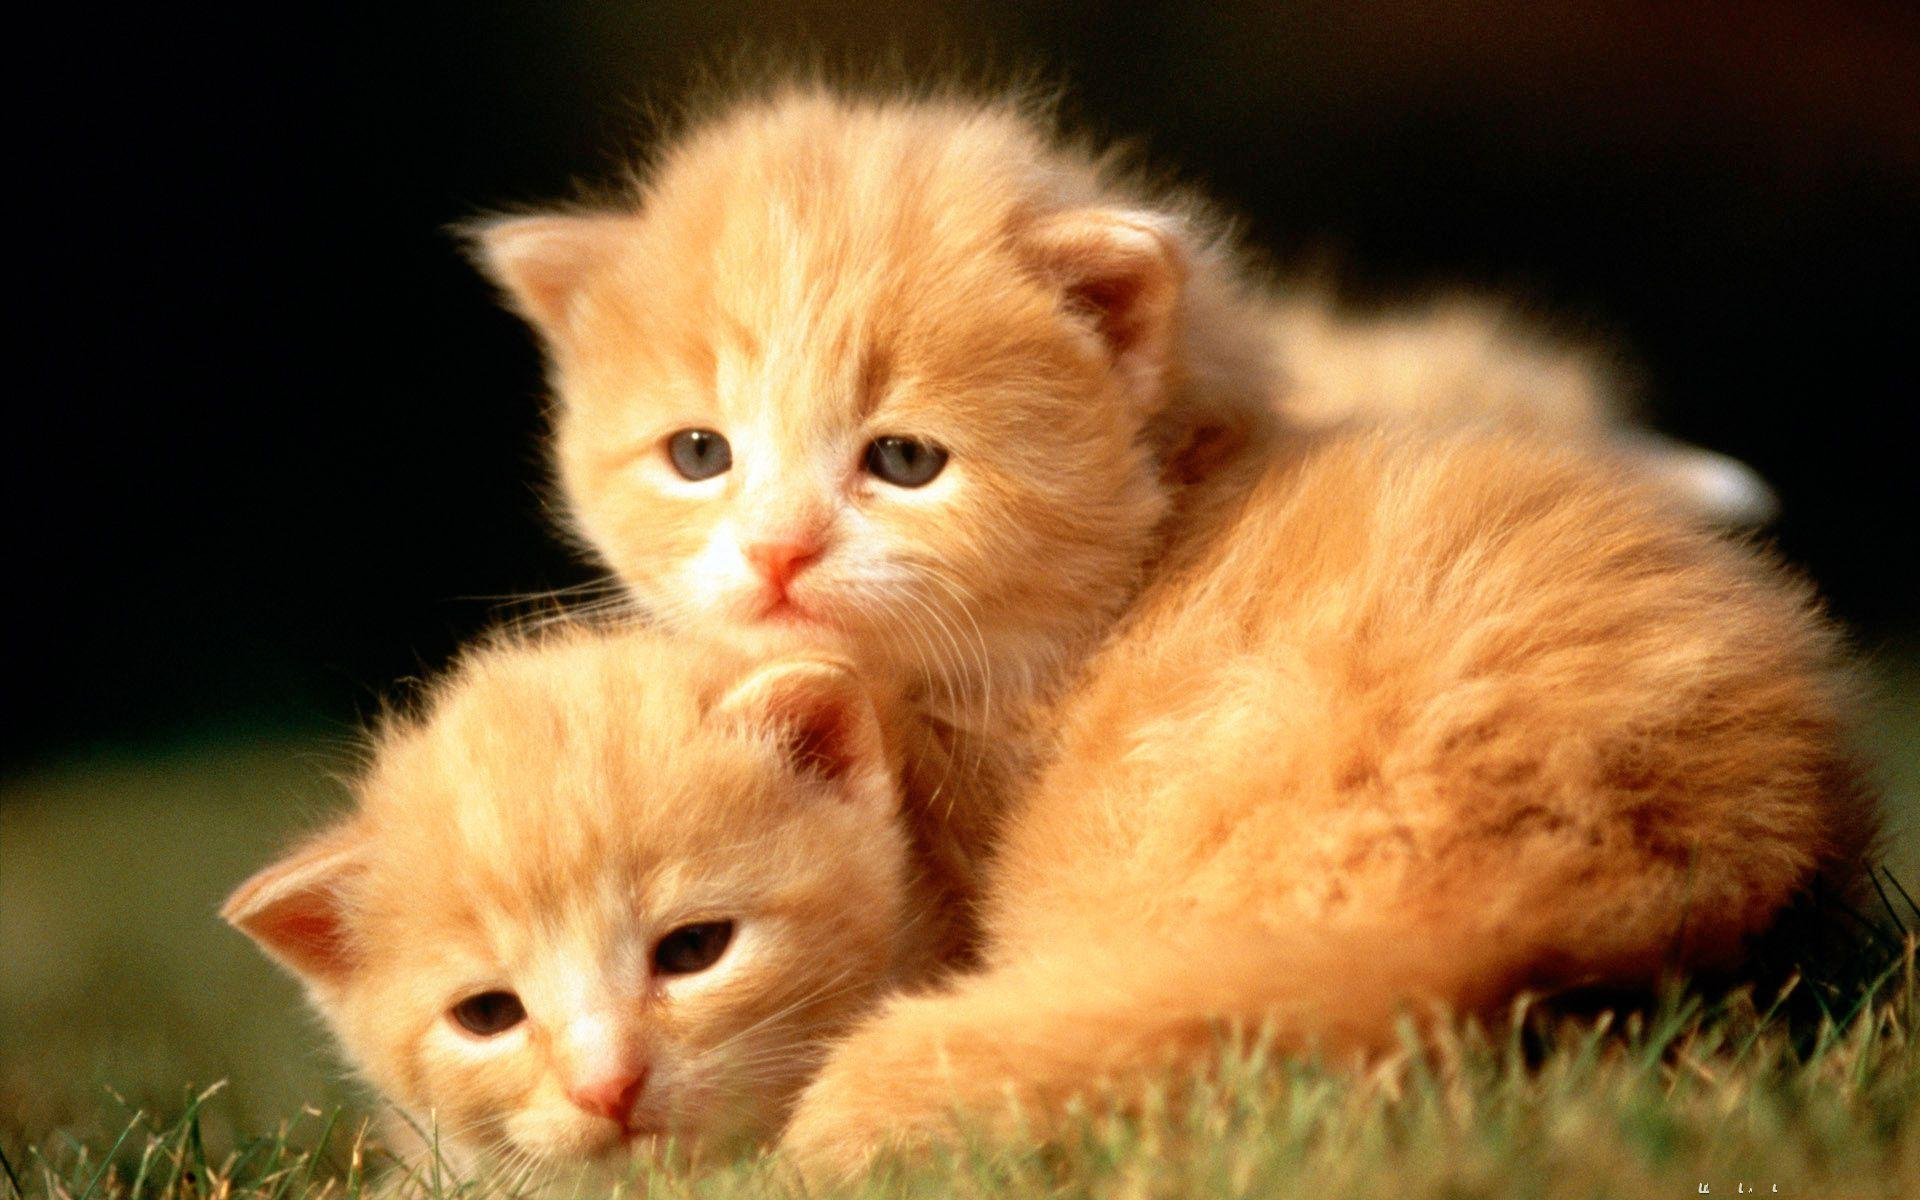 Cute Baby Animal Wallpapers 1920x1200